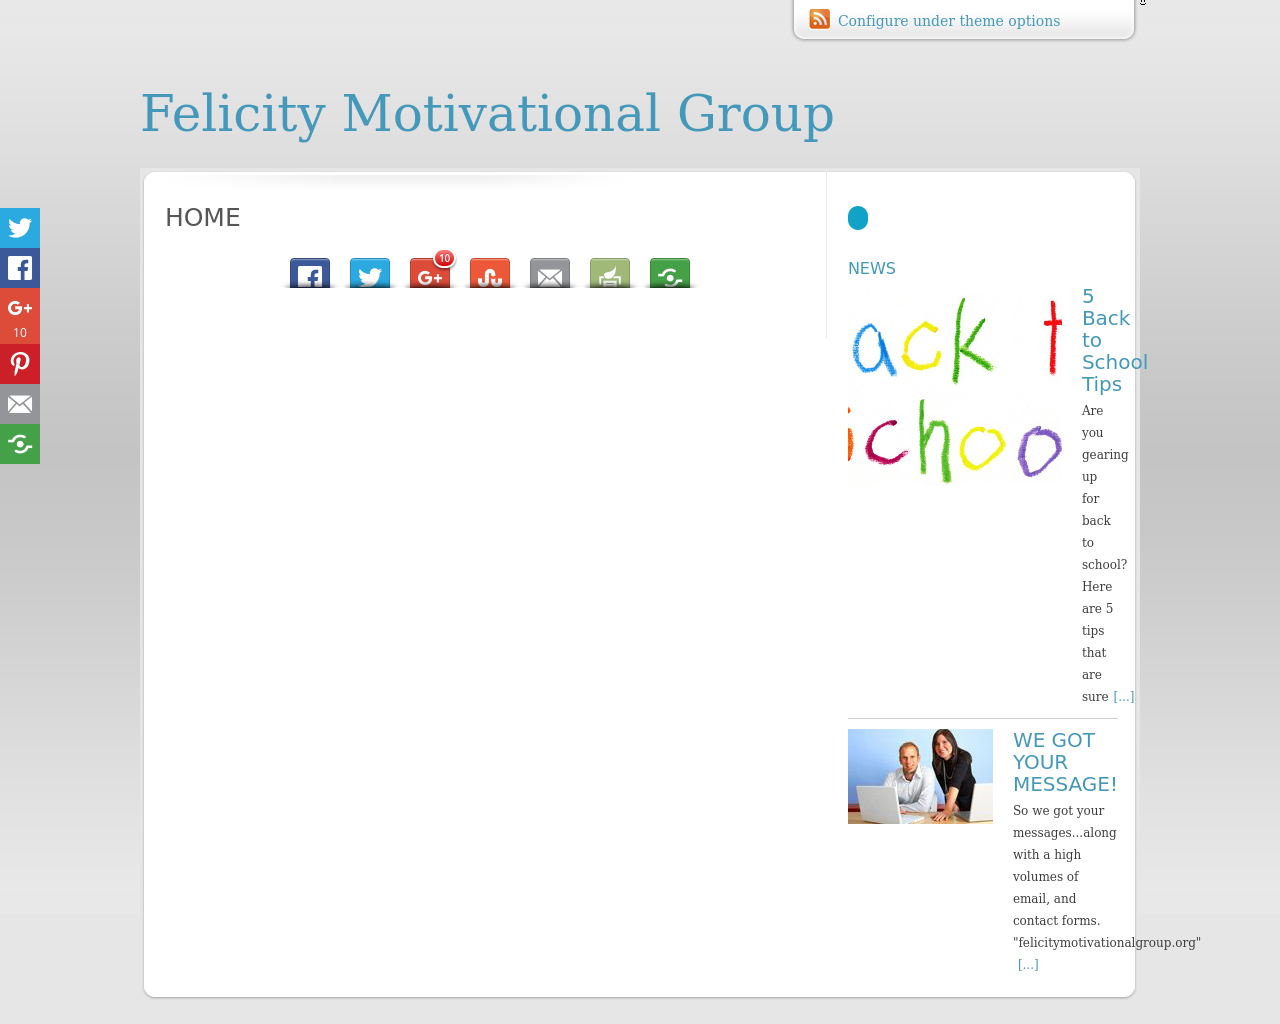 Felicity-Motivational-Group-Advertising-Reviews-Pricing